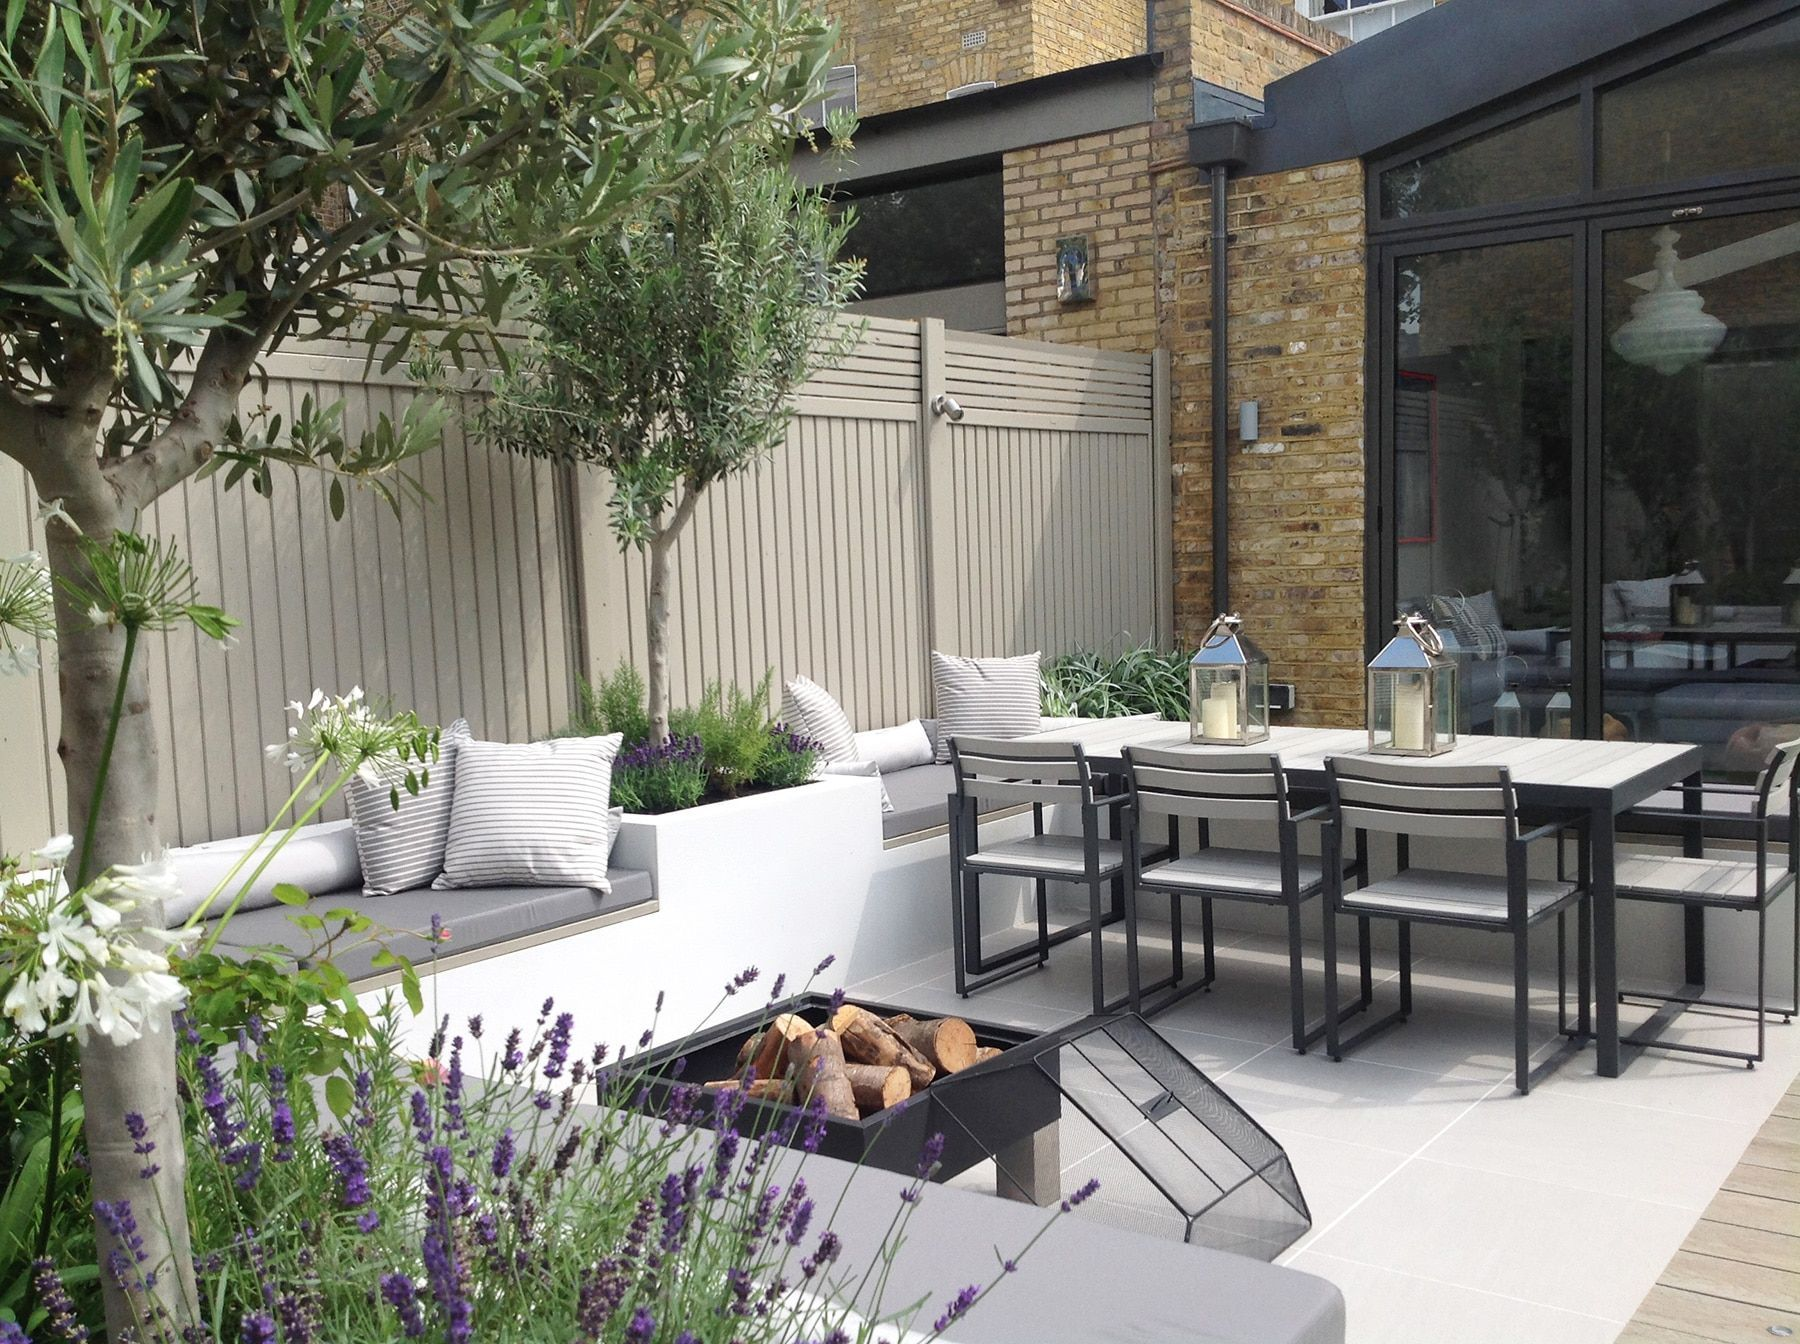 firepit #seating #garden #design #area #with #forgarden design for